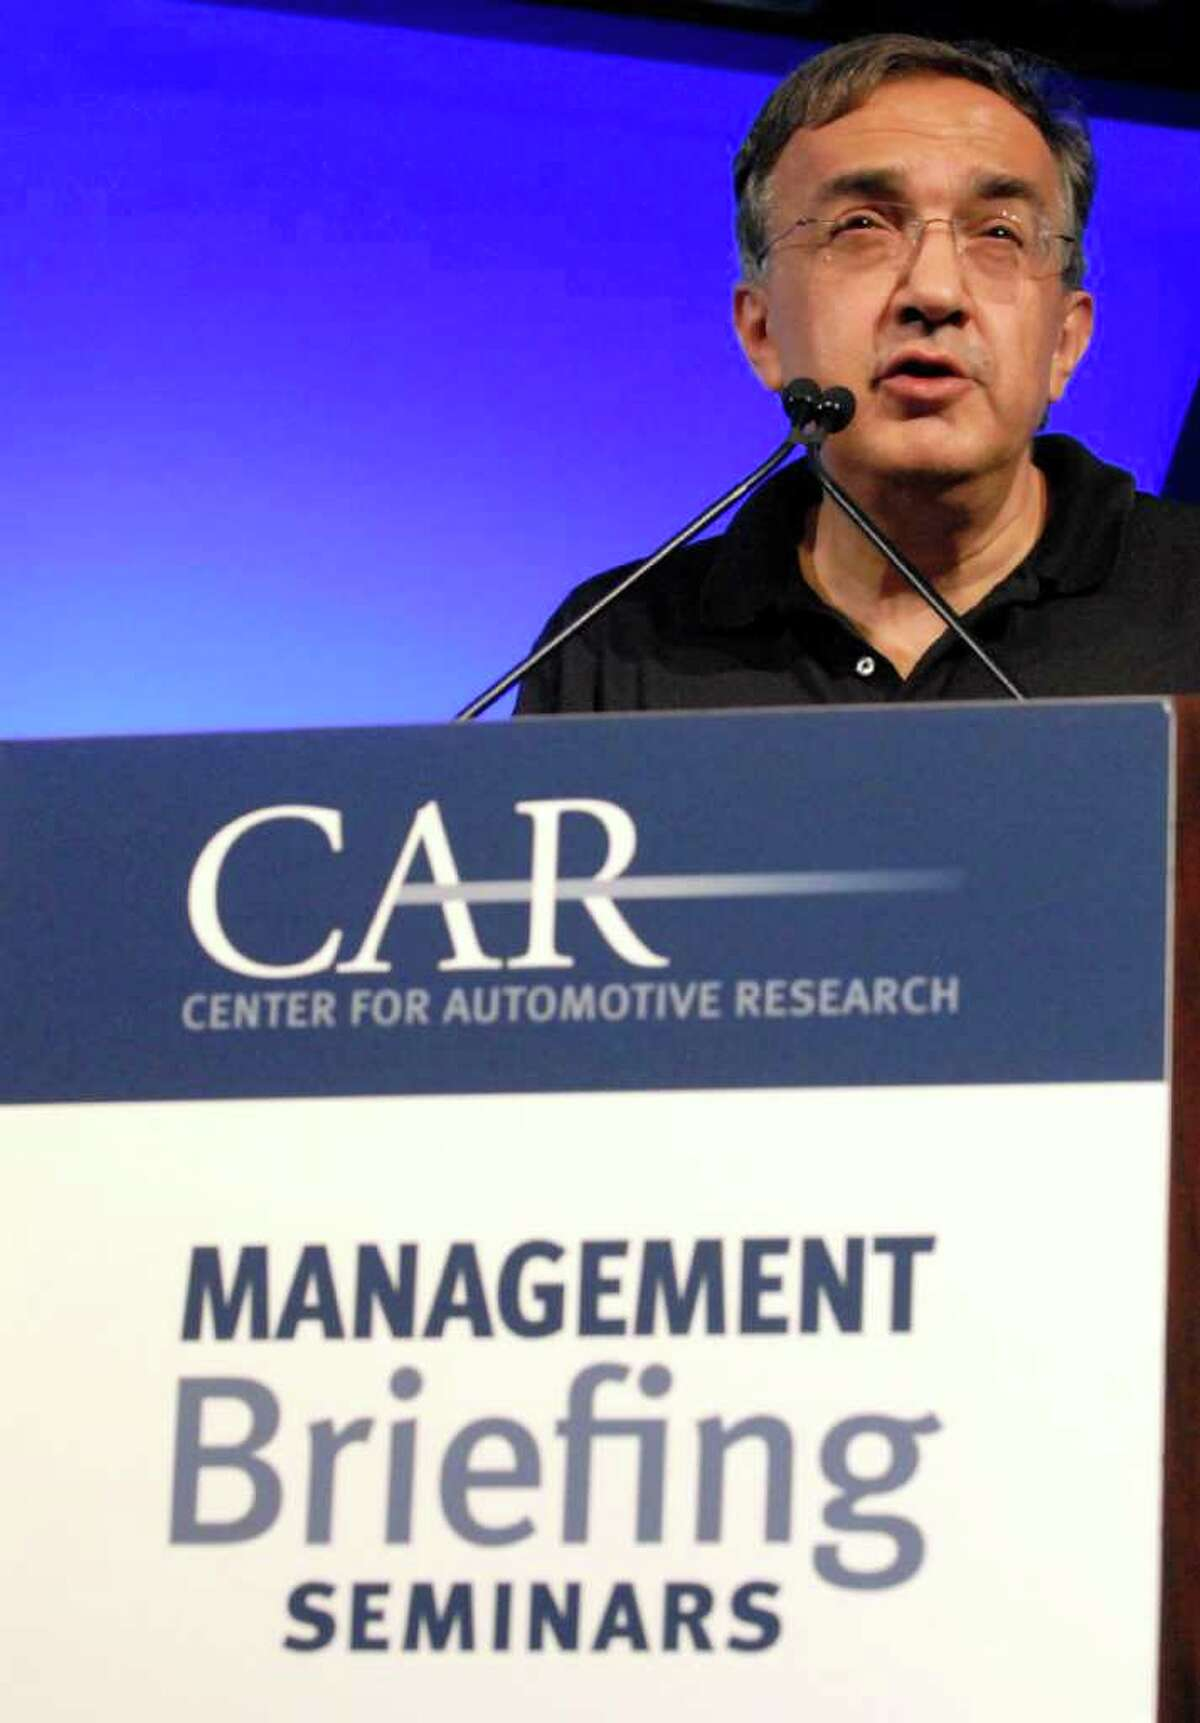 Chrysler Group LLC's Chief Executive Officer Sergio Marchionne speaks to a morning session at the annual Center for Automotive Research's Management Briefing Seminar Wednesday, Aug. 3, 2011, at the Grand Traverse Resort and Spa near Traverse City, Mich. Marchionne, also head of Italy?s Fiat SpA, said changes to the internal combustion engine, and not electric or hydrogen fuel cell technology, will be the answer to meeting the standards. (AP Photo/ John L. Russell)